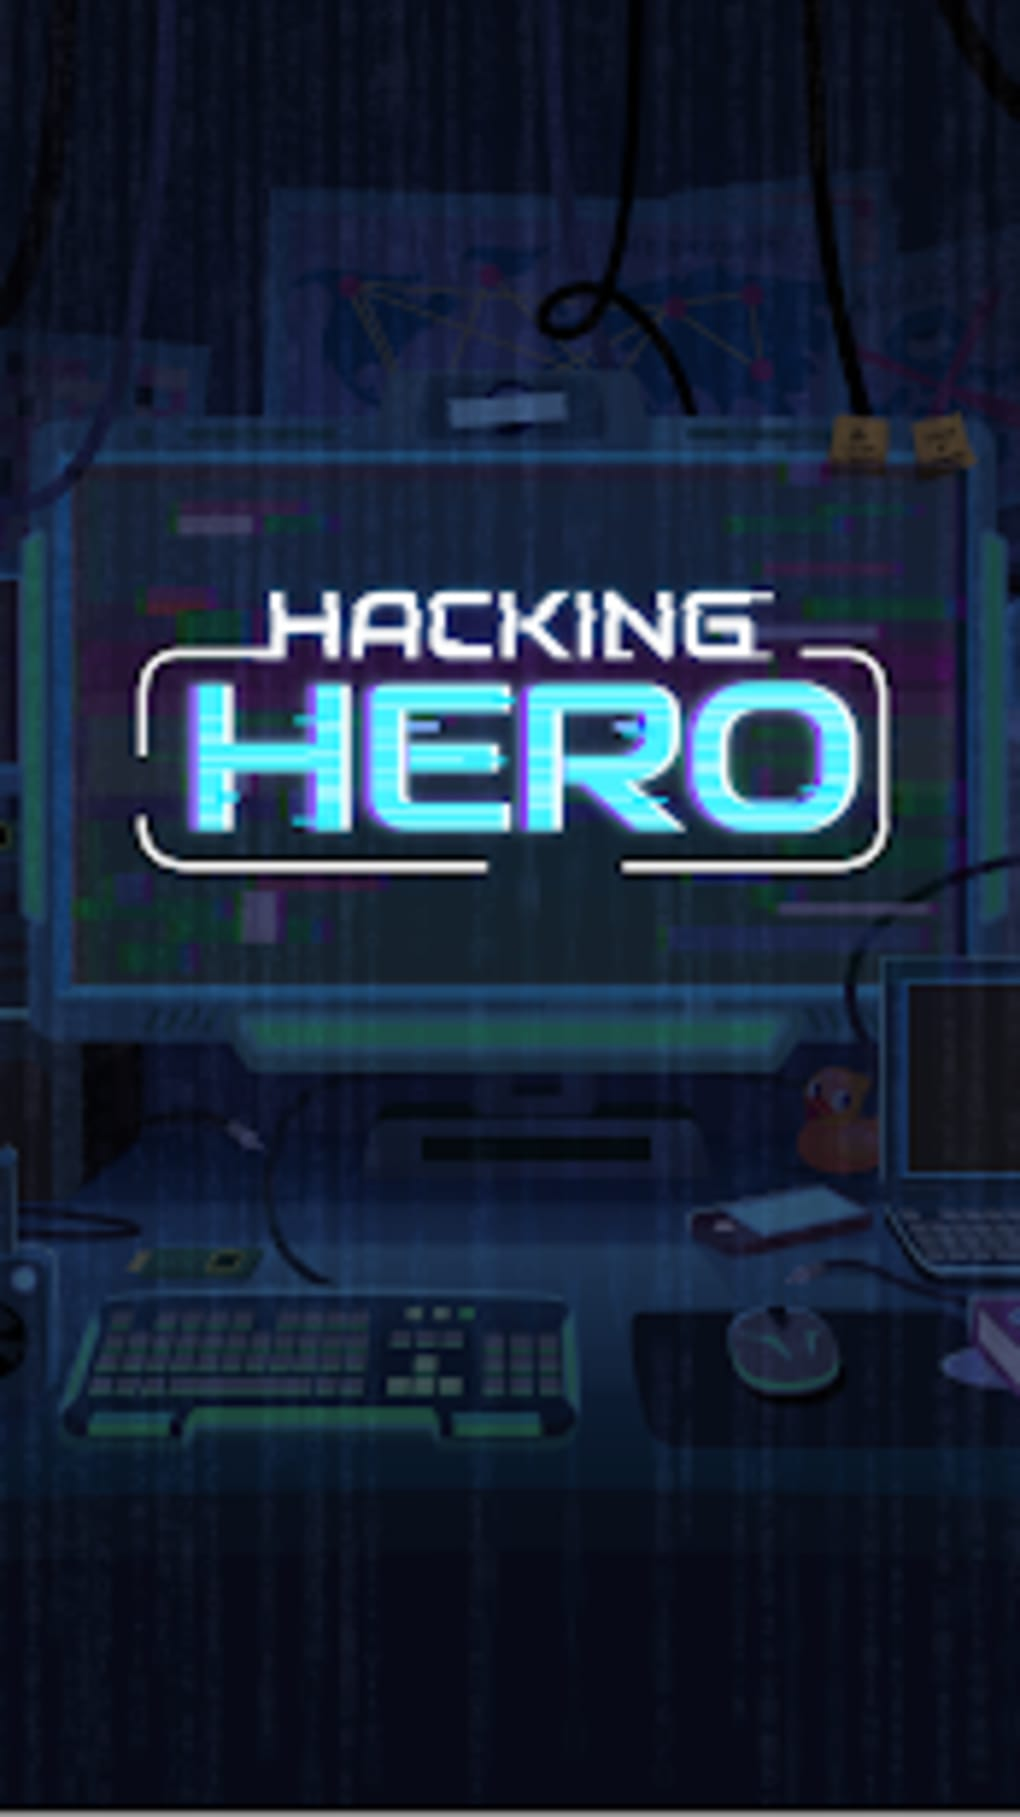 Hacking Hero Cyber Adventure Clicker for Android - Download